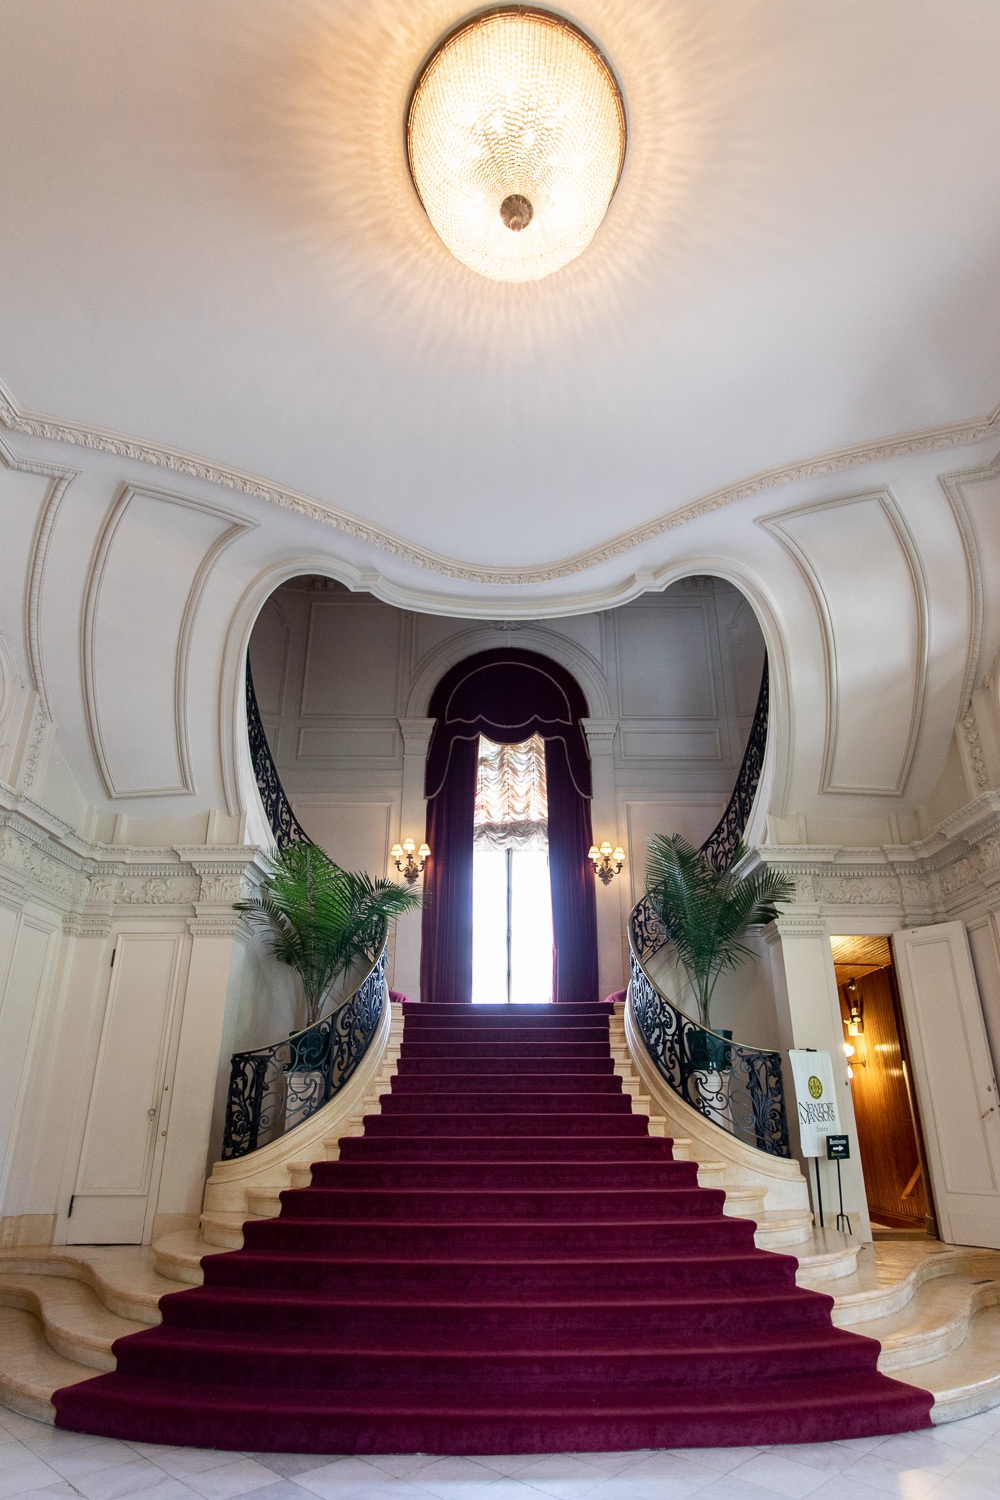 Picture of: Visiting The Rosecliff Mansion In Newport Ri Eugene Buchko Photography